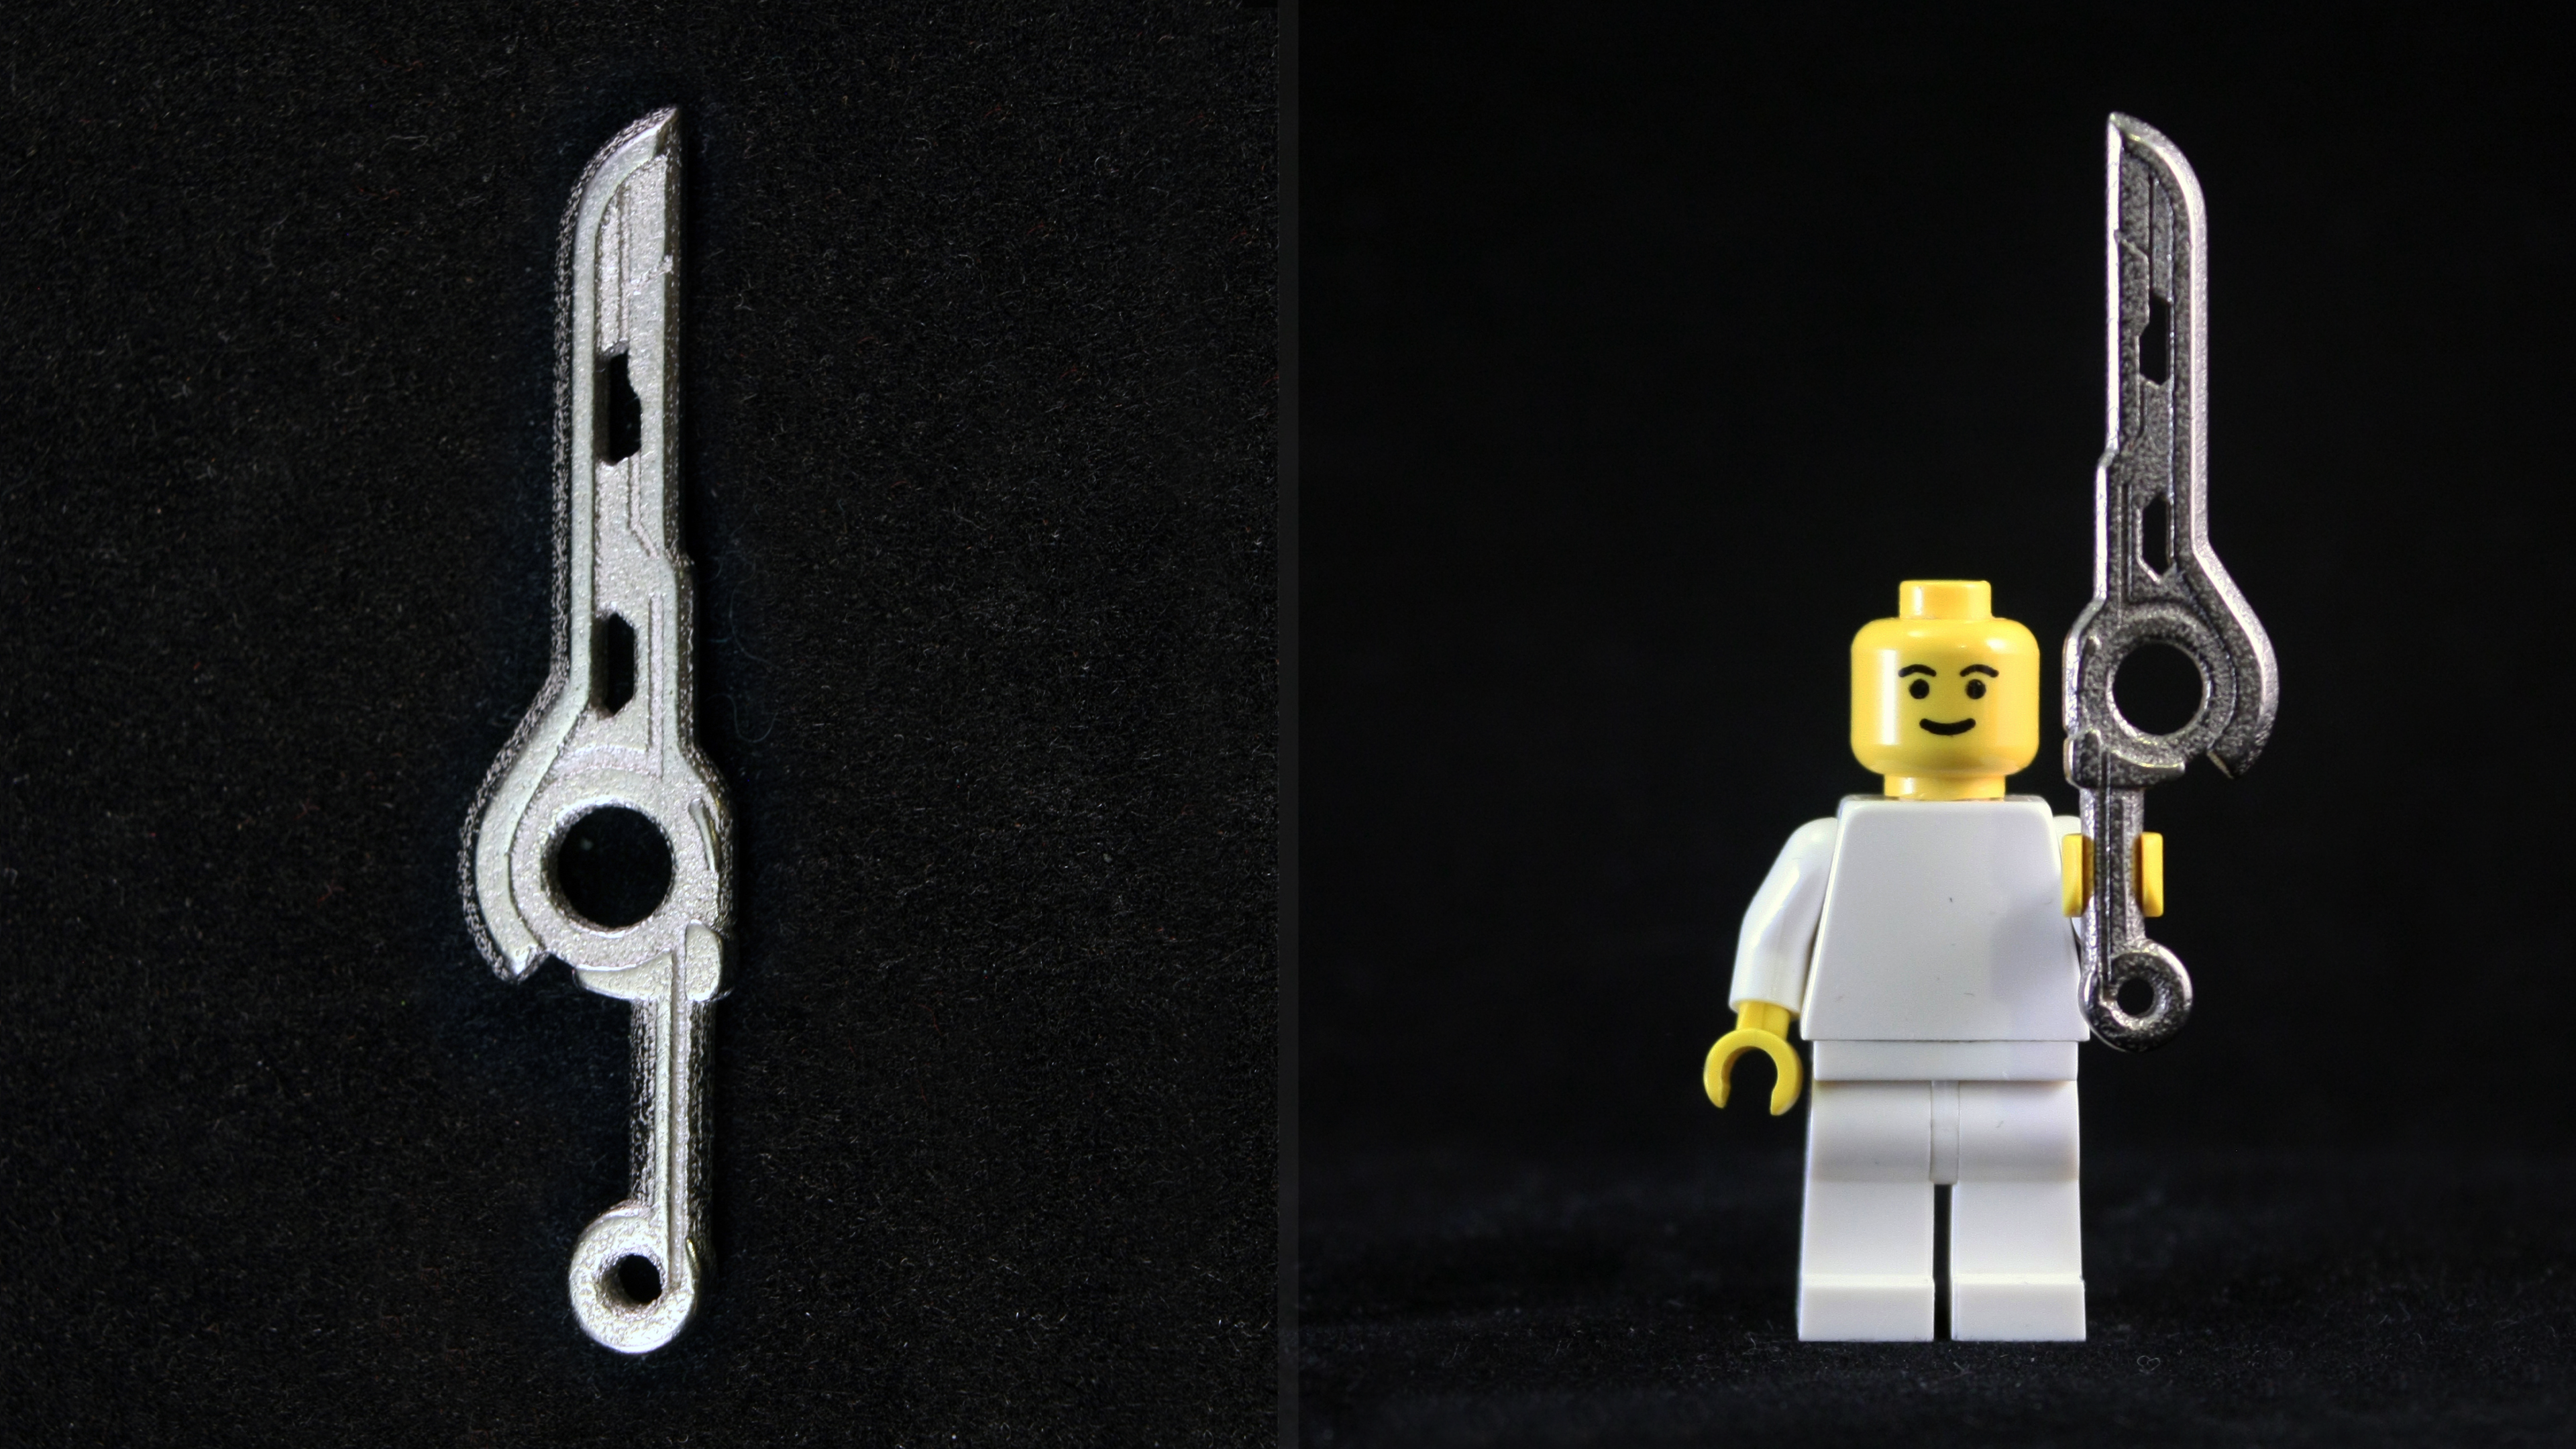 Lego 3D Printed Polished Nickel Steel Monado Sword by mingles